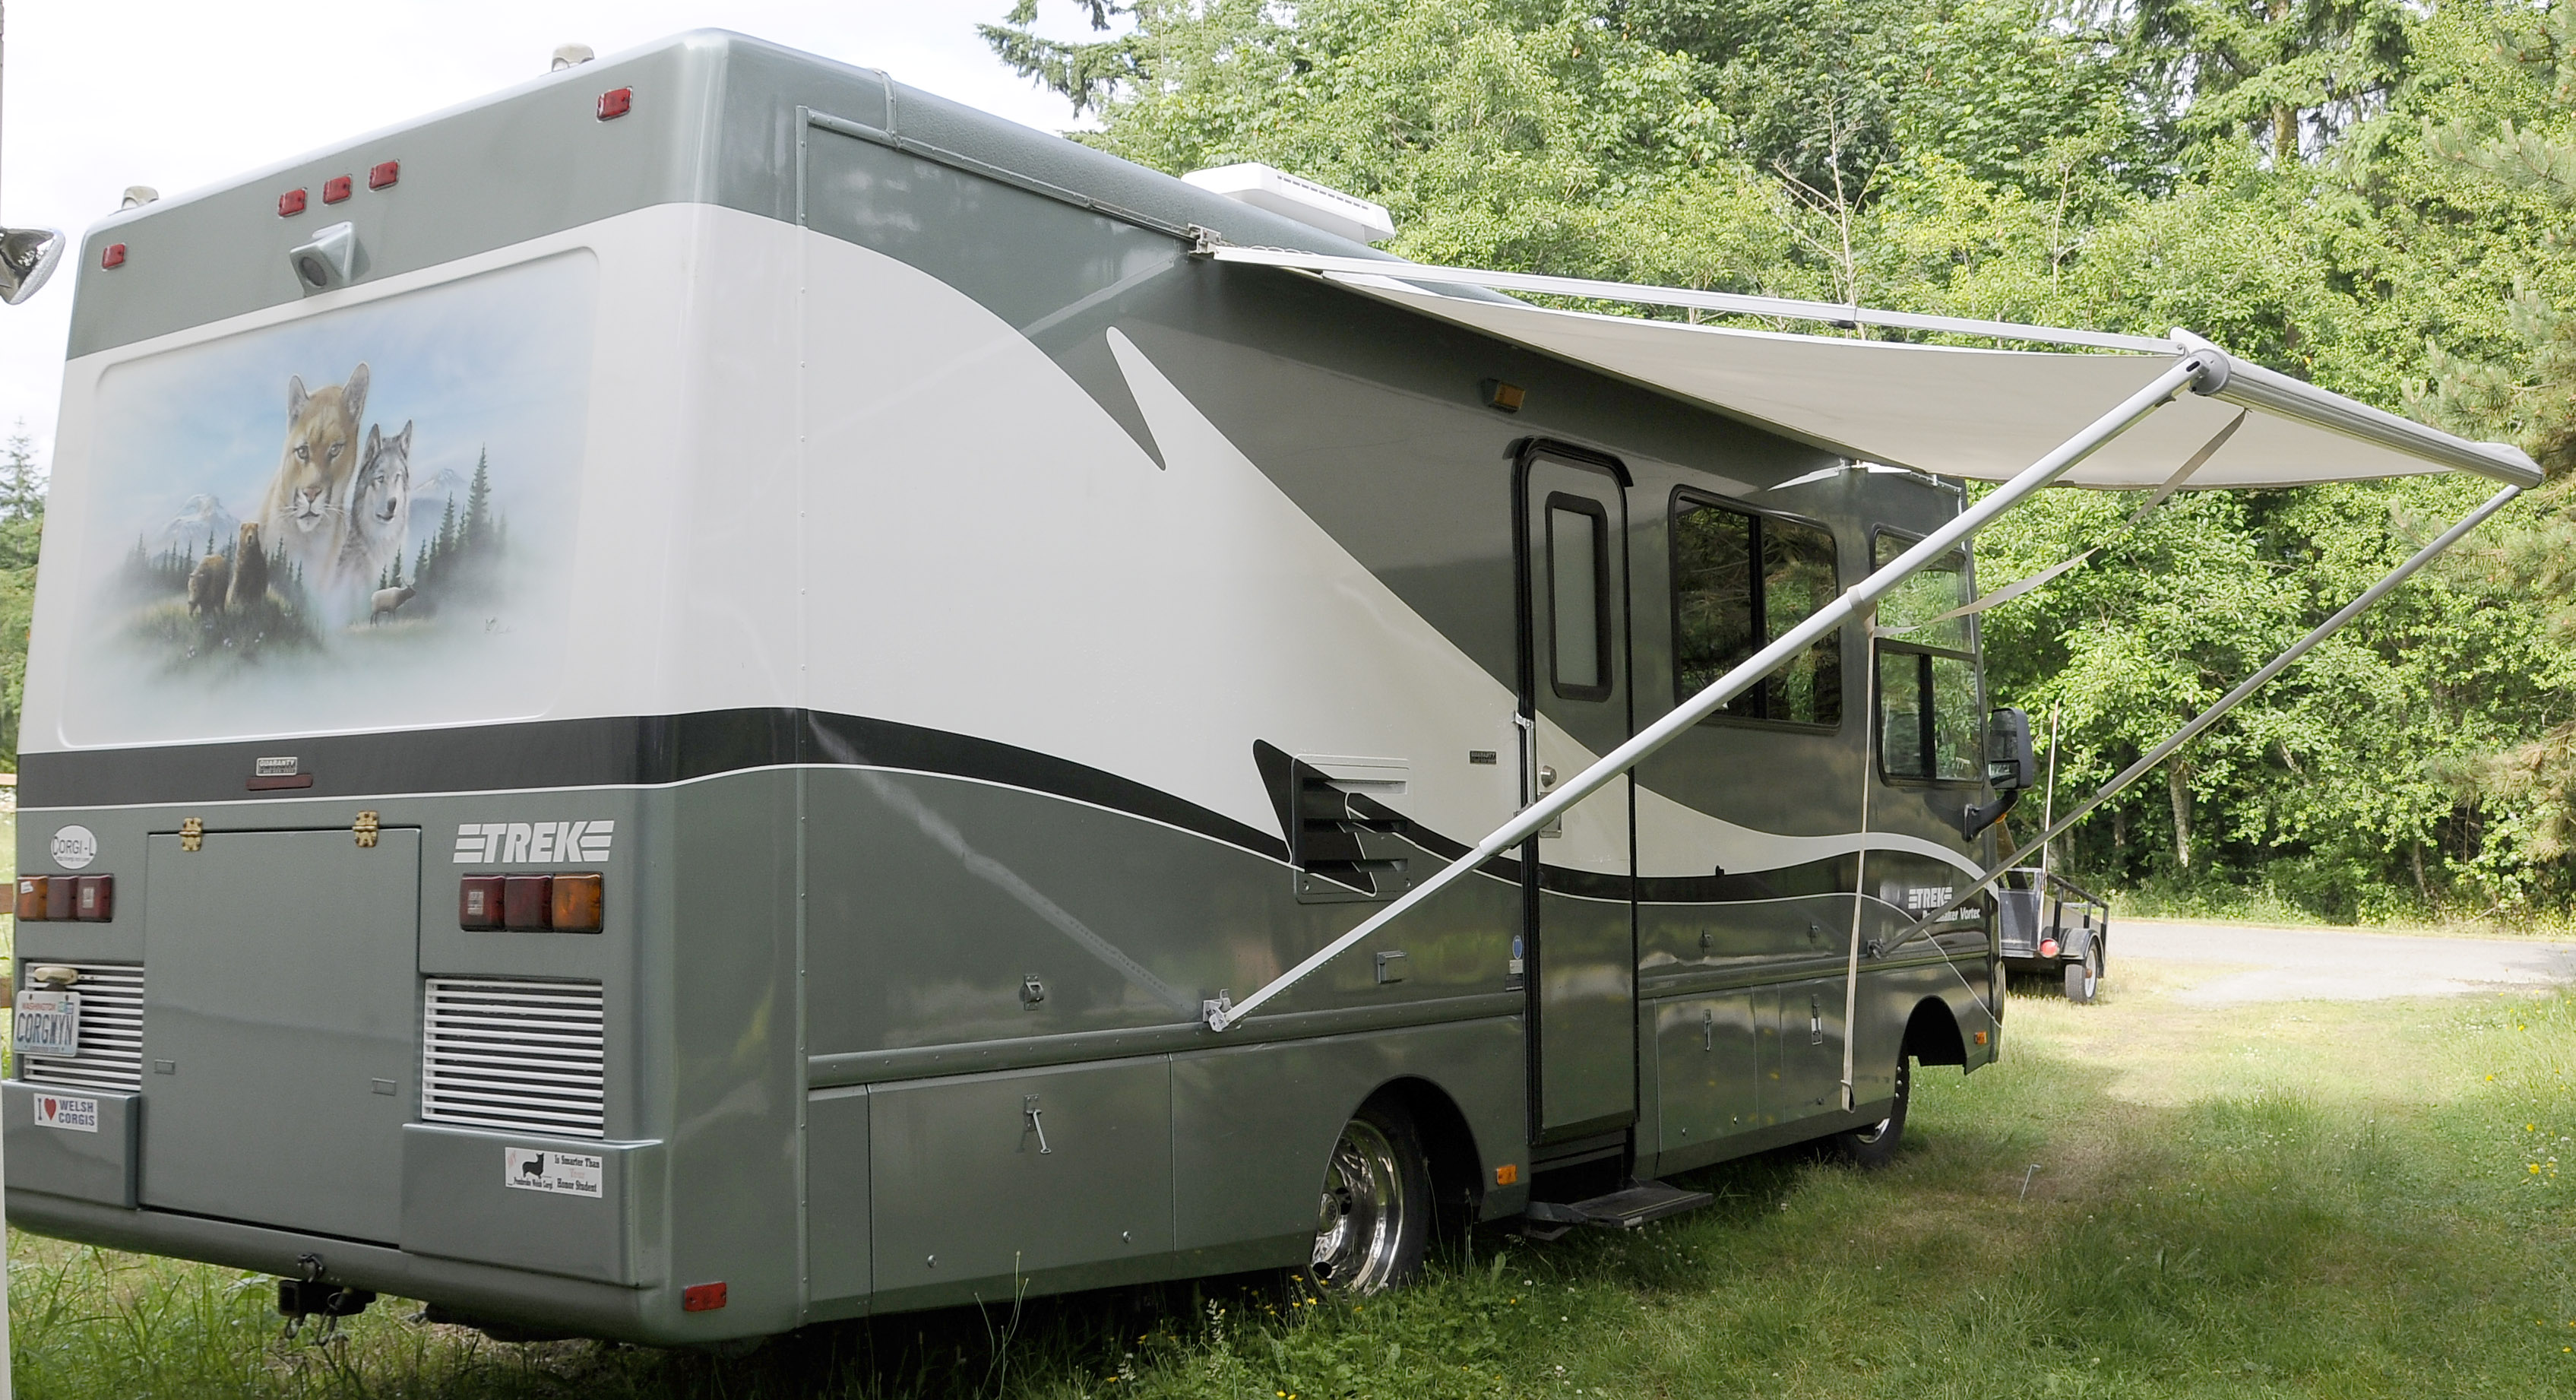 Amazing But You Can Buy Easy And Quick To Use Rainblocker Sides Thule Omnistor Caravan Style Next To Test Was The Thule Omnistor Caravan Style Awning The Awning Is Available In Six Sizes From 23m To 45m In Length And Is Priced From